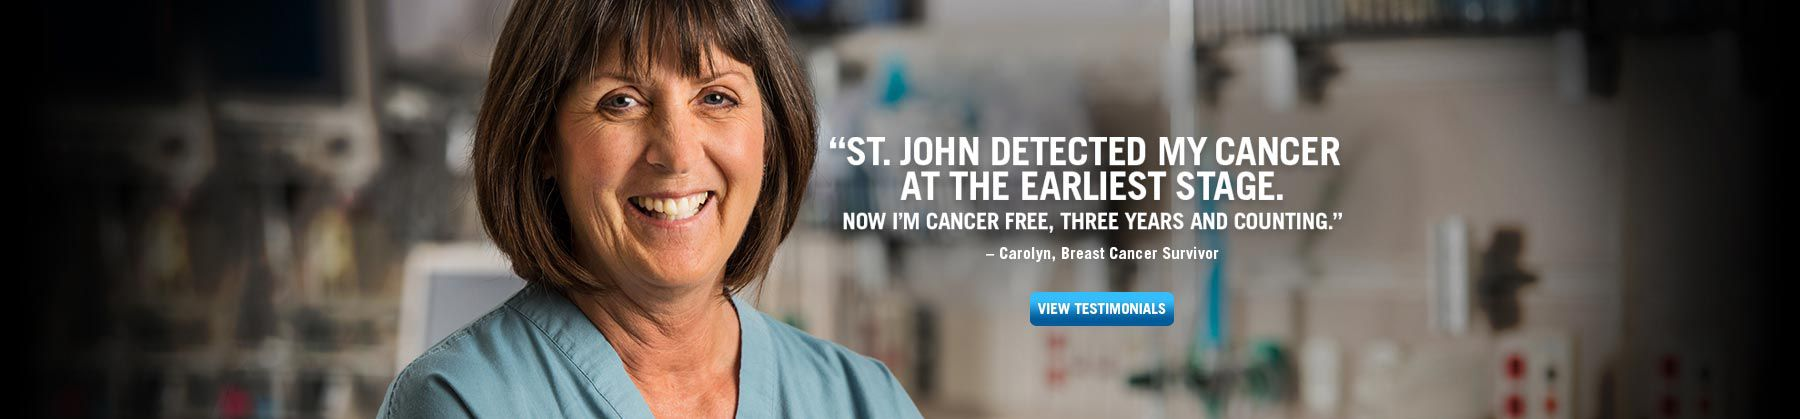 Carolyn, Breast Cancer Survivor